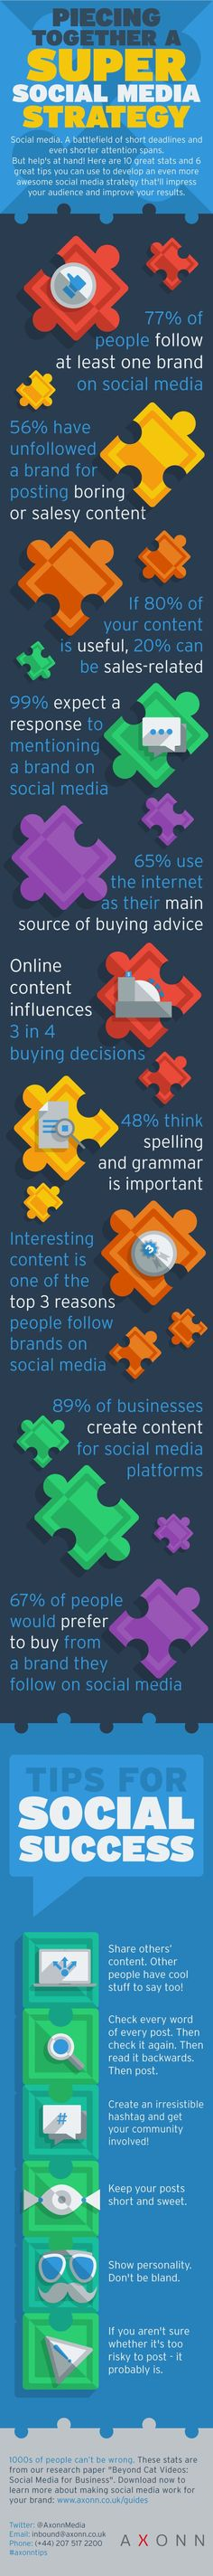 6 Tips to Create a Super Social Media Strategy [INFOGRAPHIC]